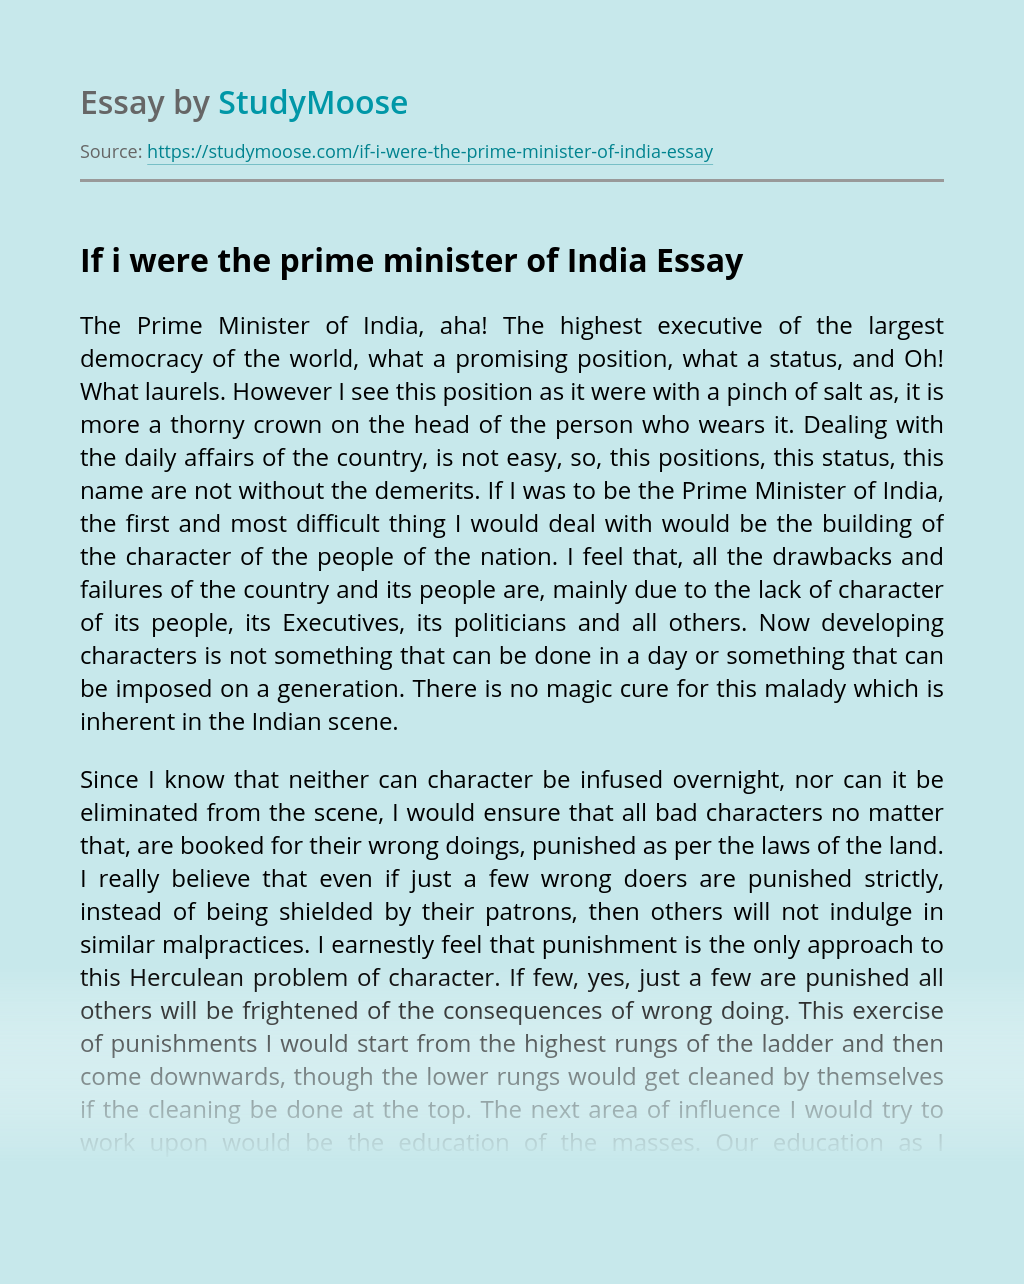 If I Were the Prime Minister of India